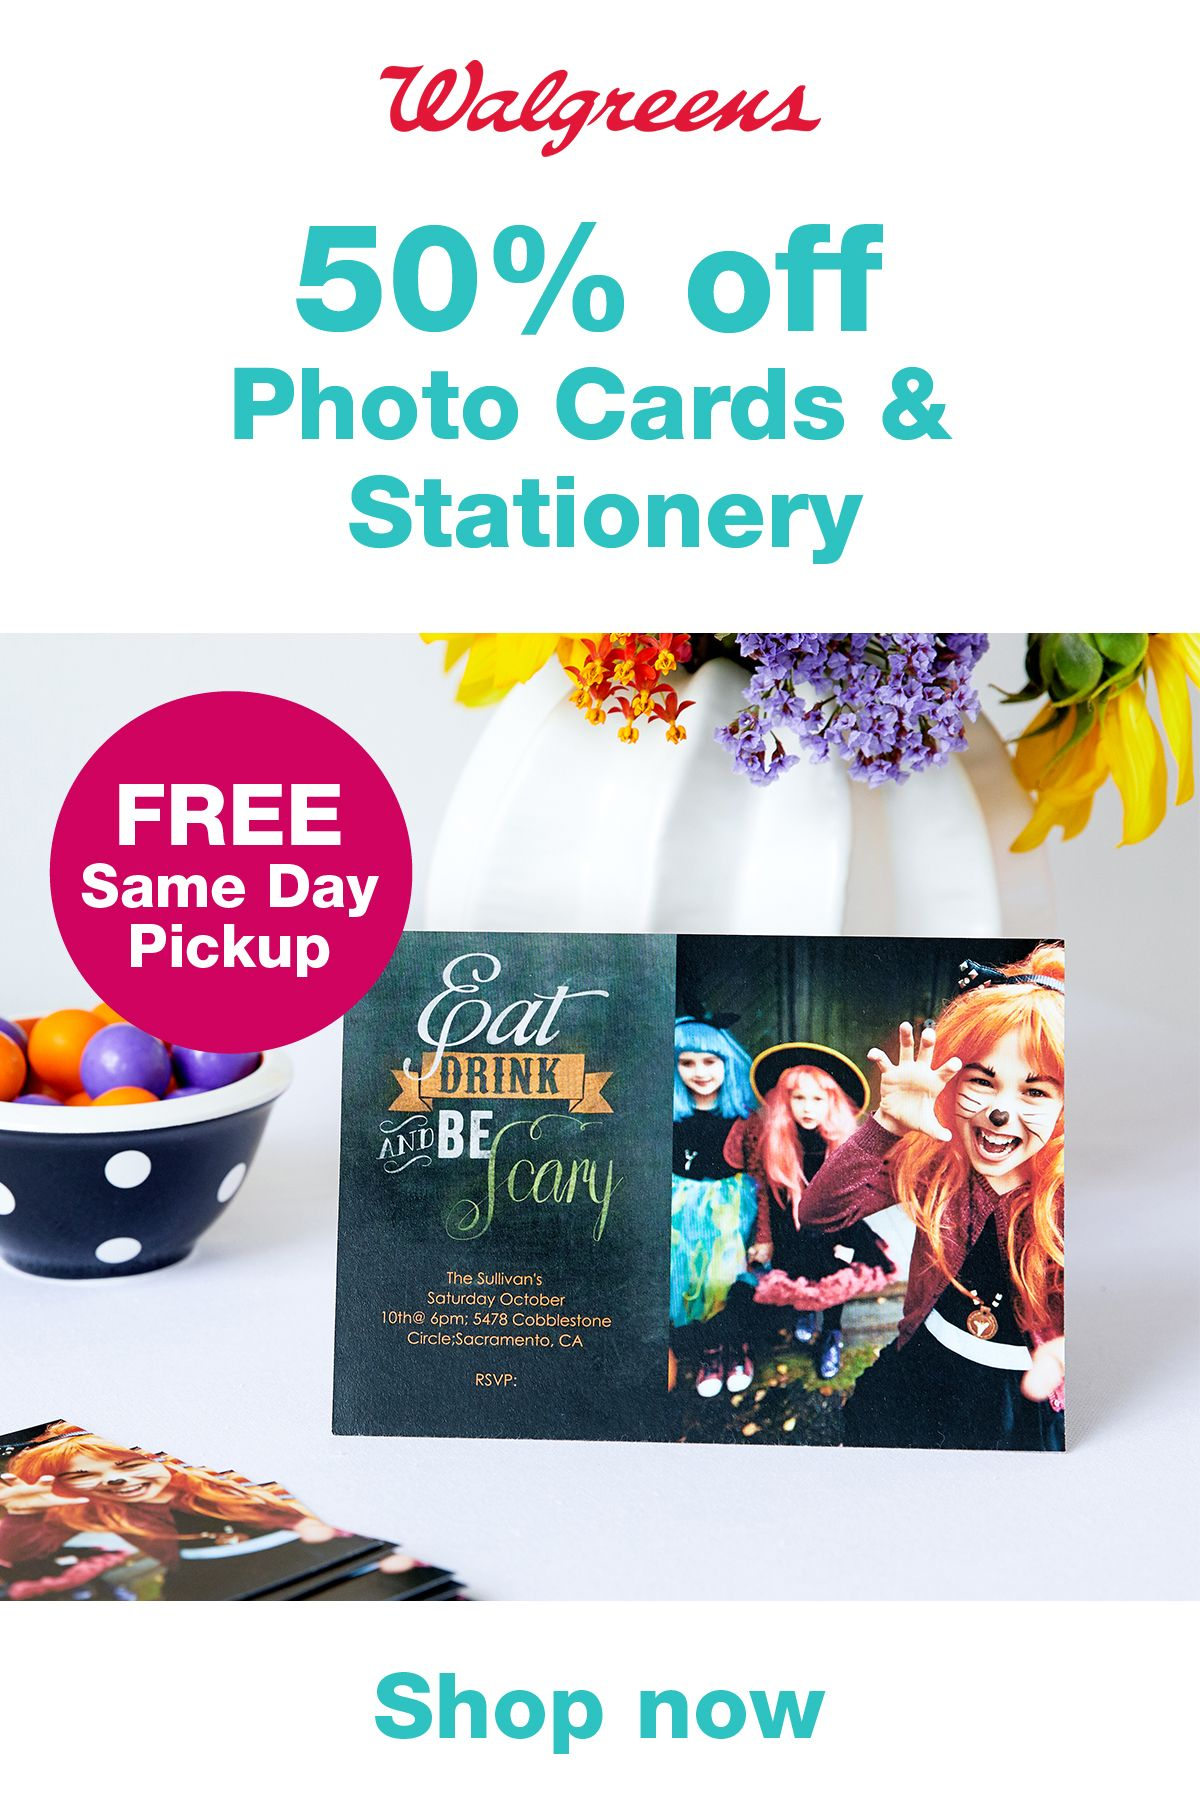 Get 50 OFF Photo Cards & Stationery with code GOOD50 thru